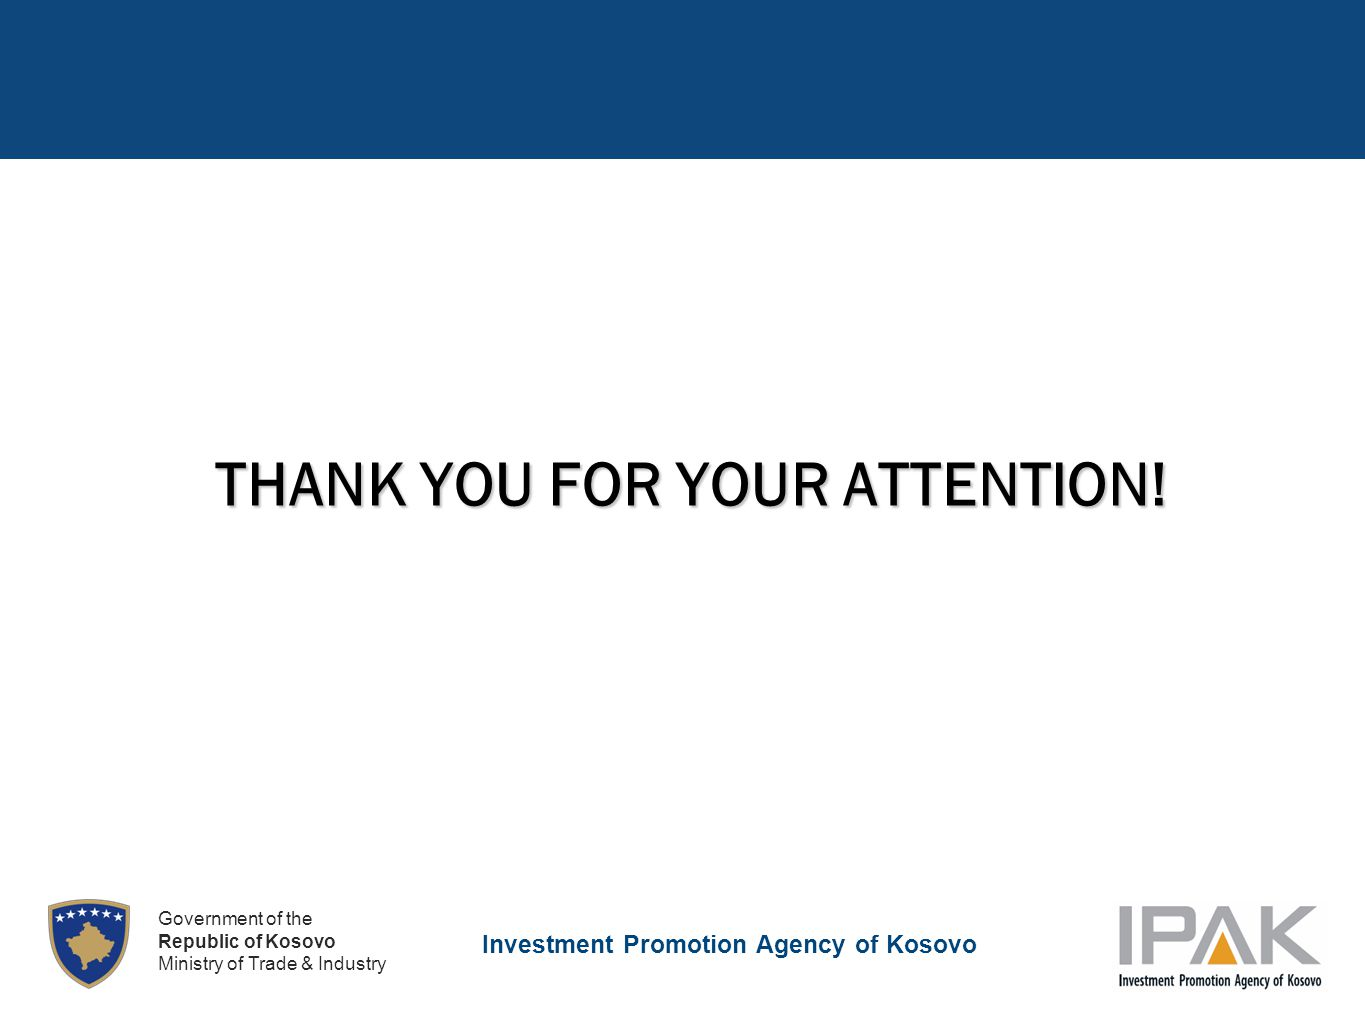 Investment Promotion Agency of Kosovo Government of the Republic of Kosovo Ministry of Trade & Industry THANK YOU FOR YOUR ATTENTION!